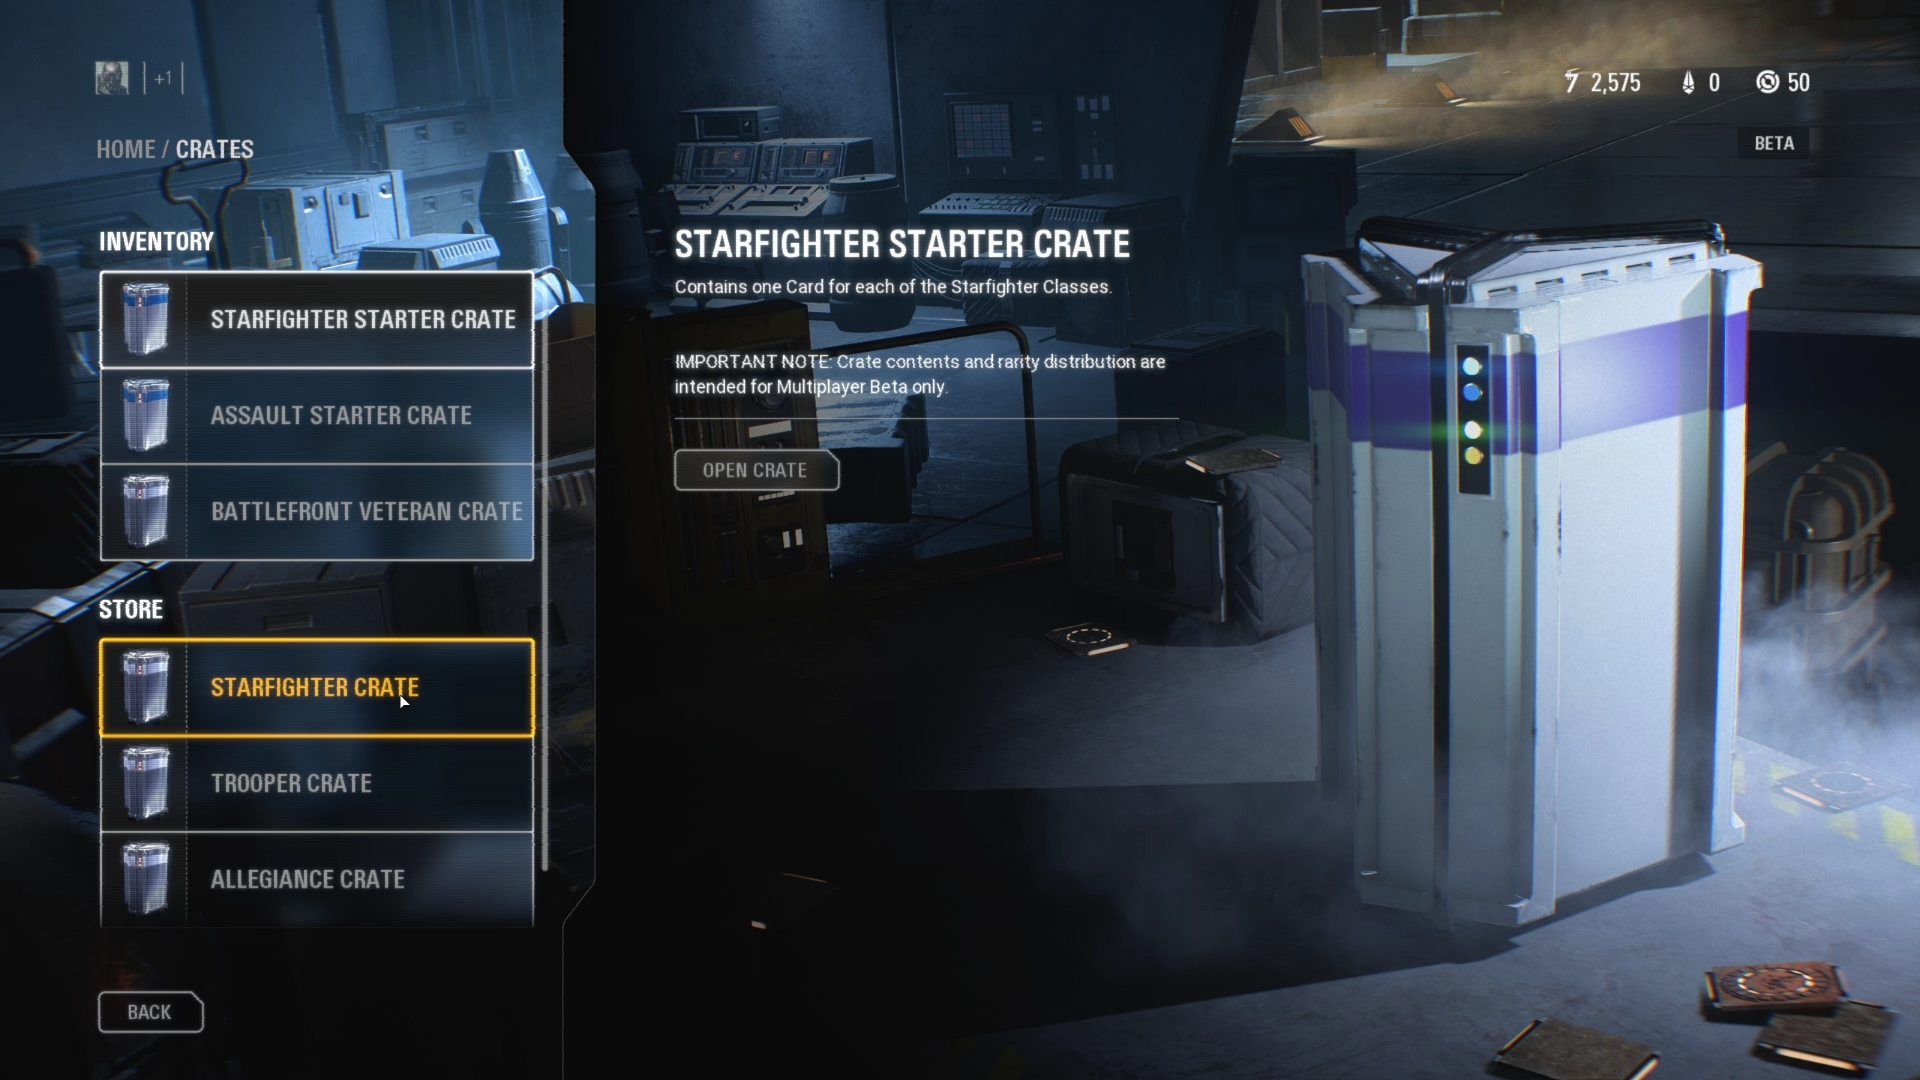 Star Wars Battlefront II Developer Response: Loot Boxes, Overpowered Classes & More